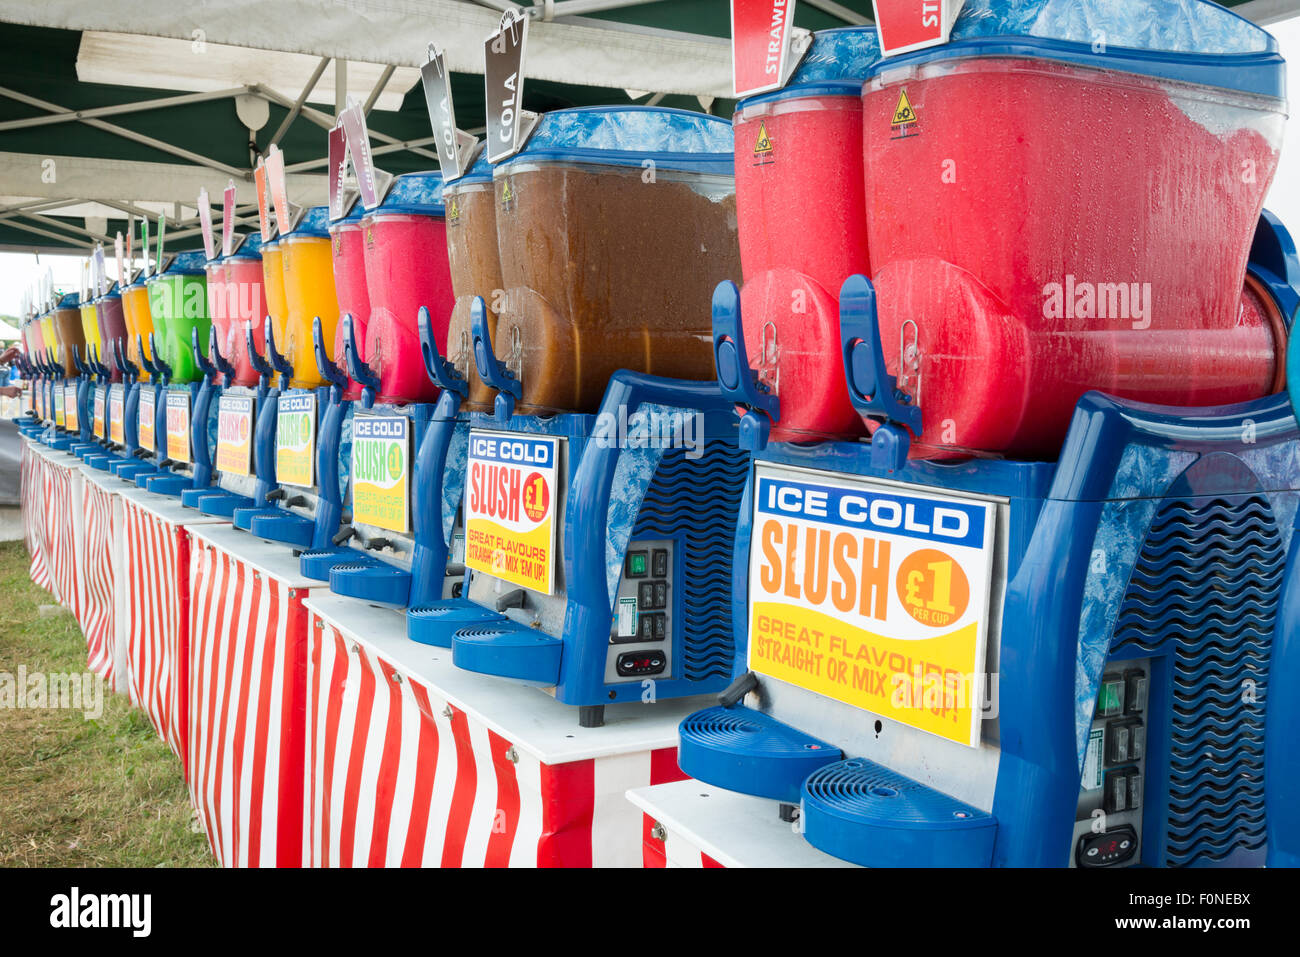 Slush drinks at a fair in the UK. Colourful iced frozen drinks. - Stock Image